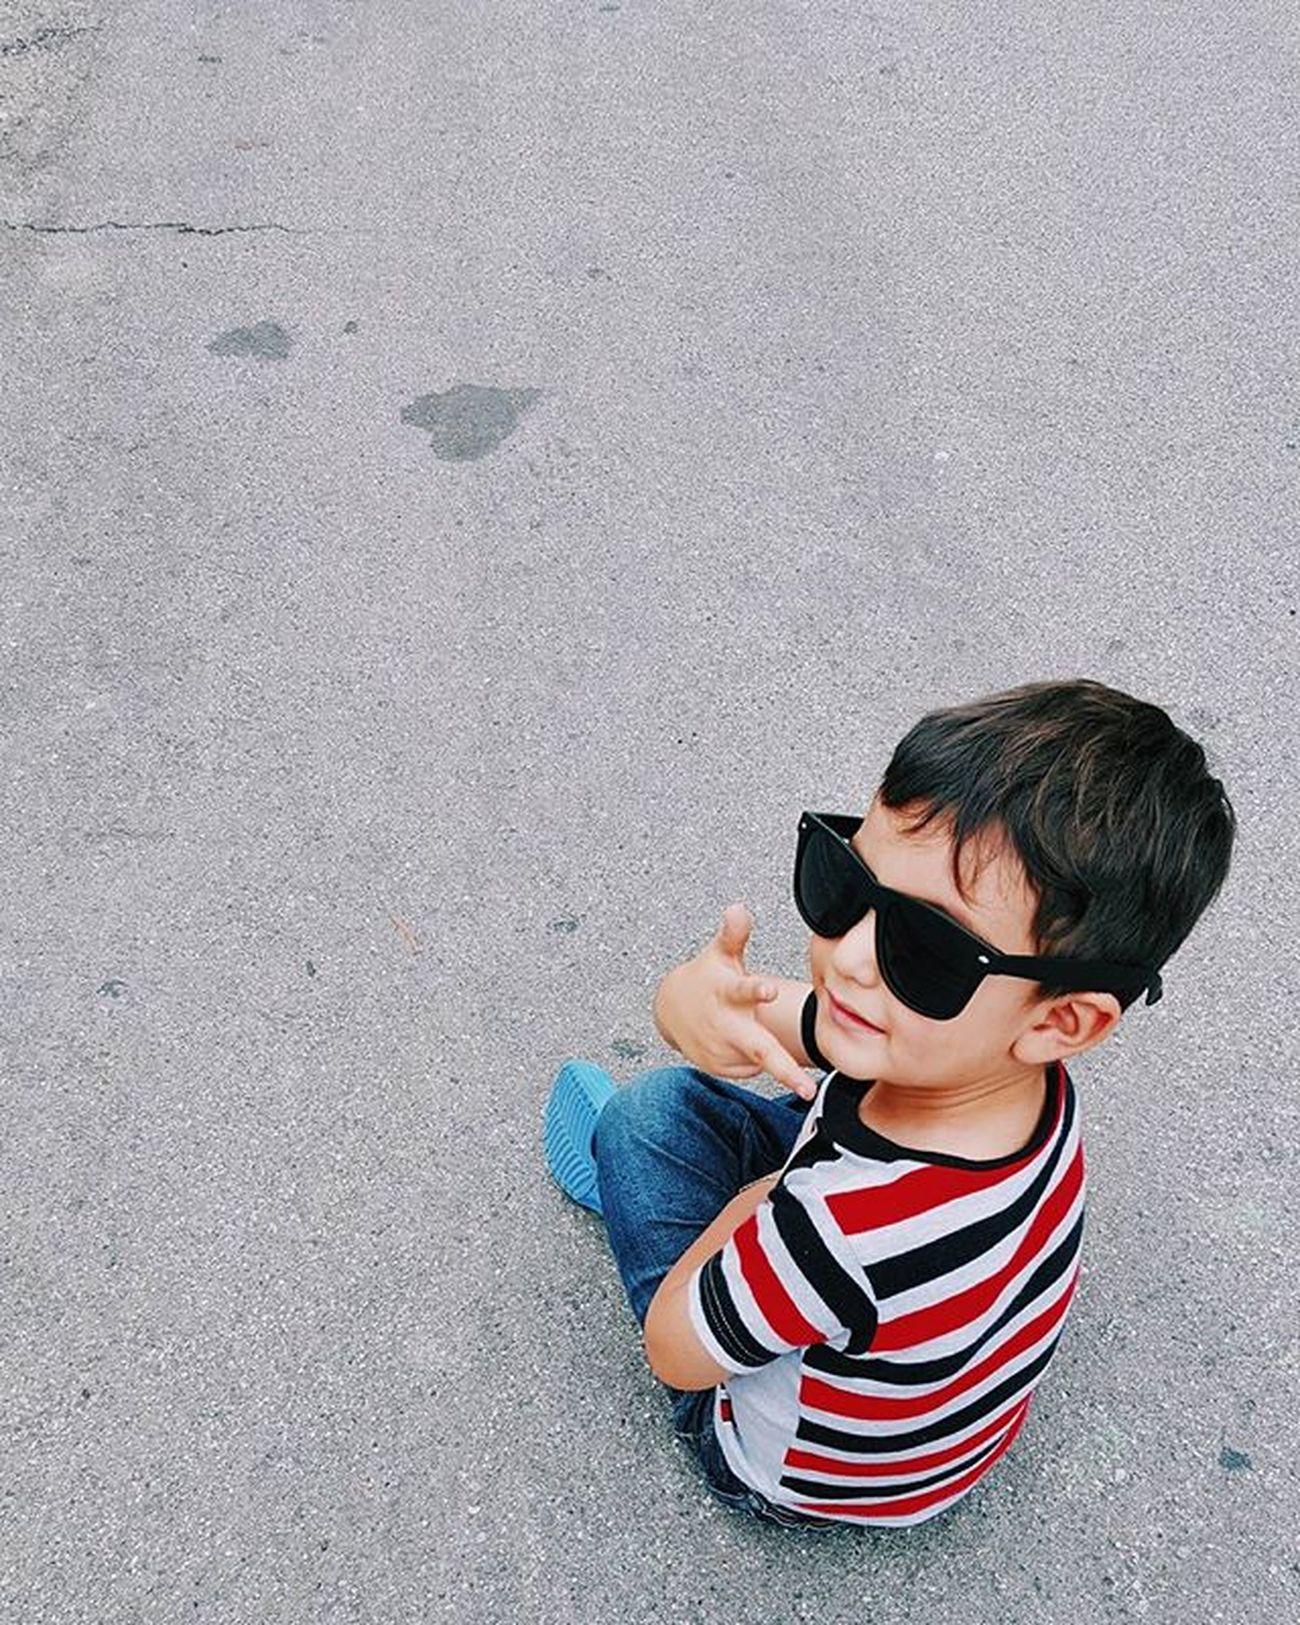 Here comes the cool Kid. Shades Hipster Montebello Urban Cool Kids Happy